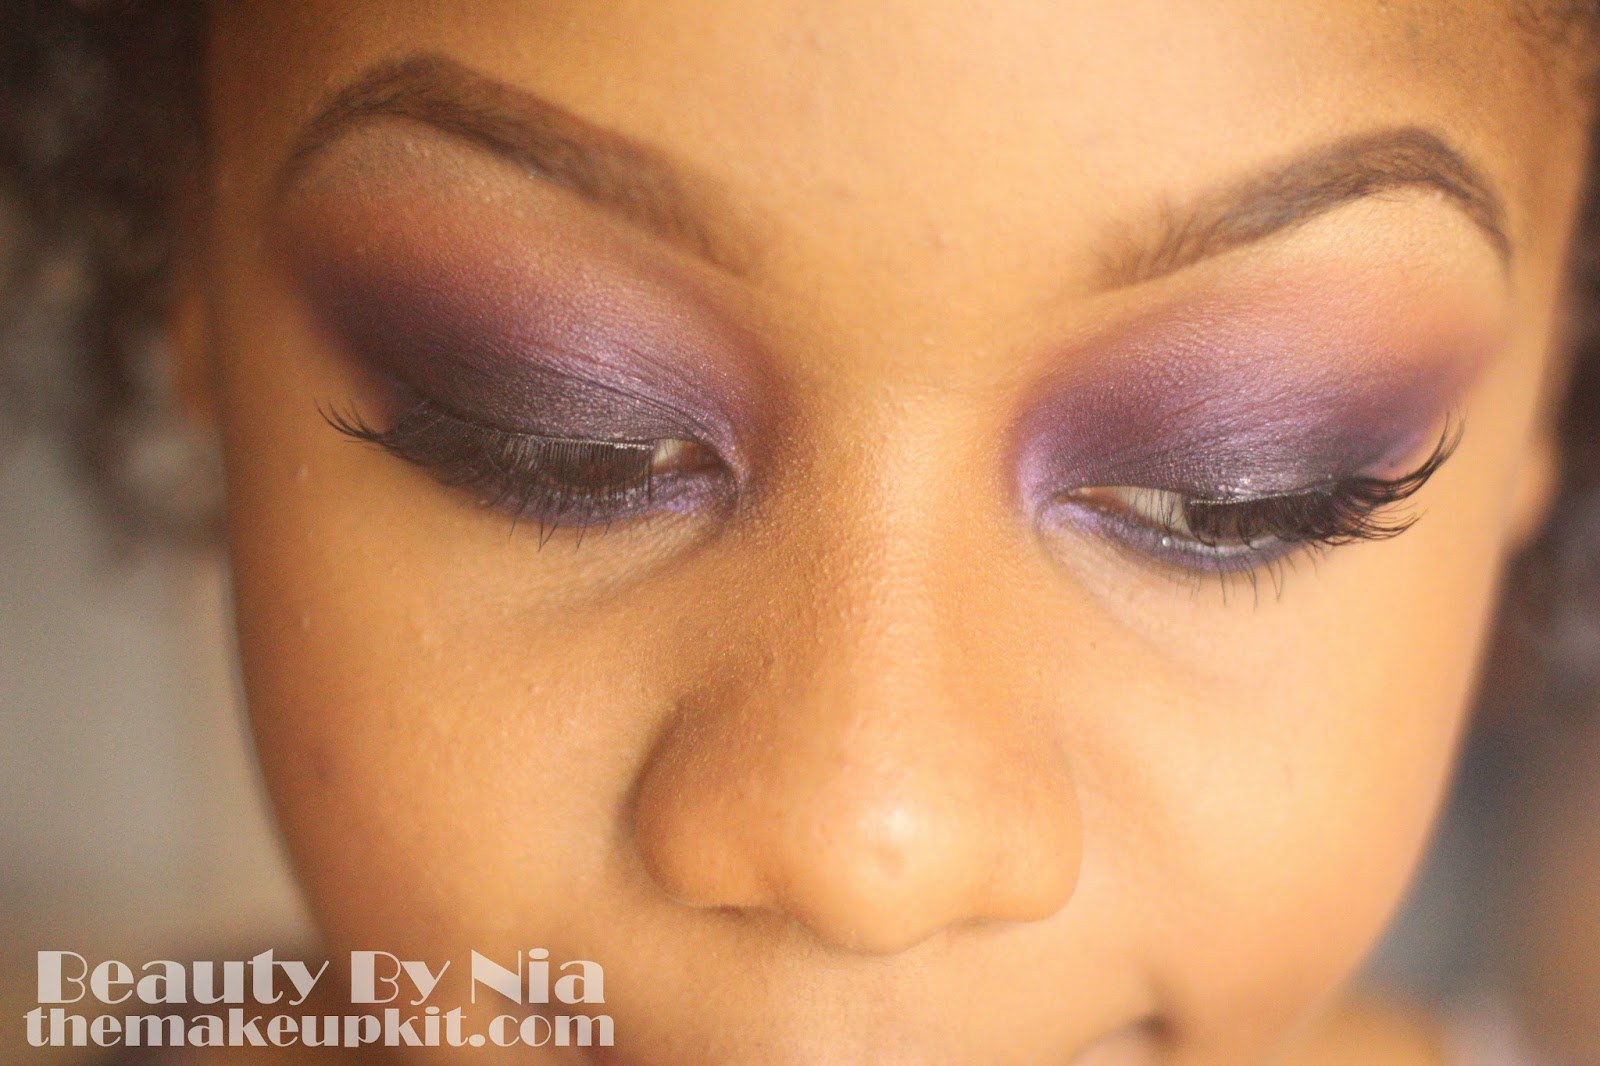 Smoked out purple eye make up look 3